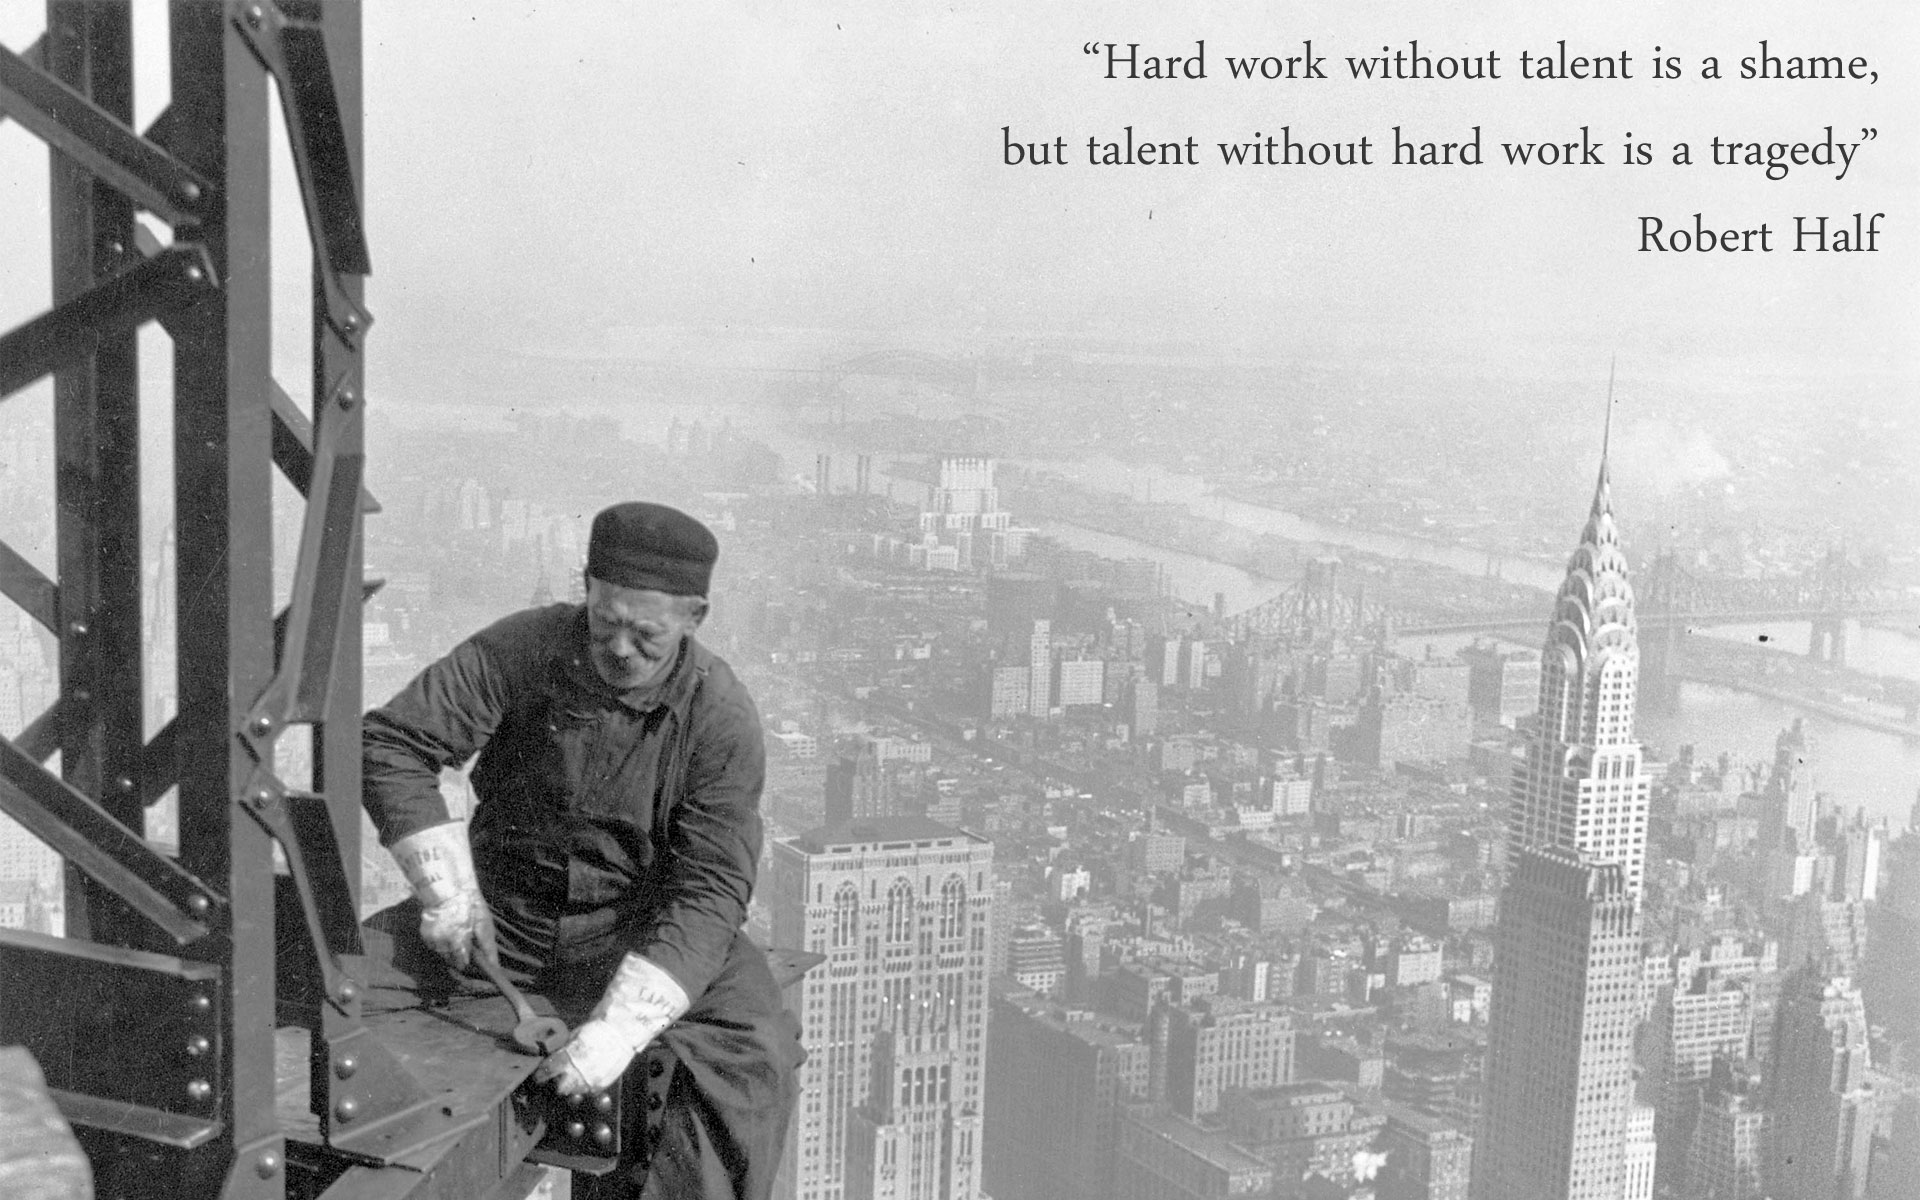 Workers quote #3